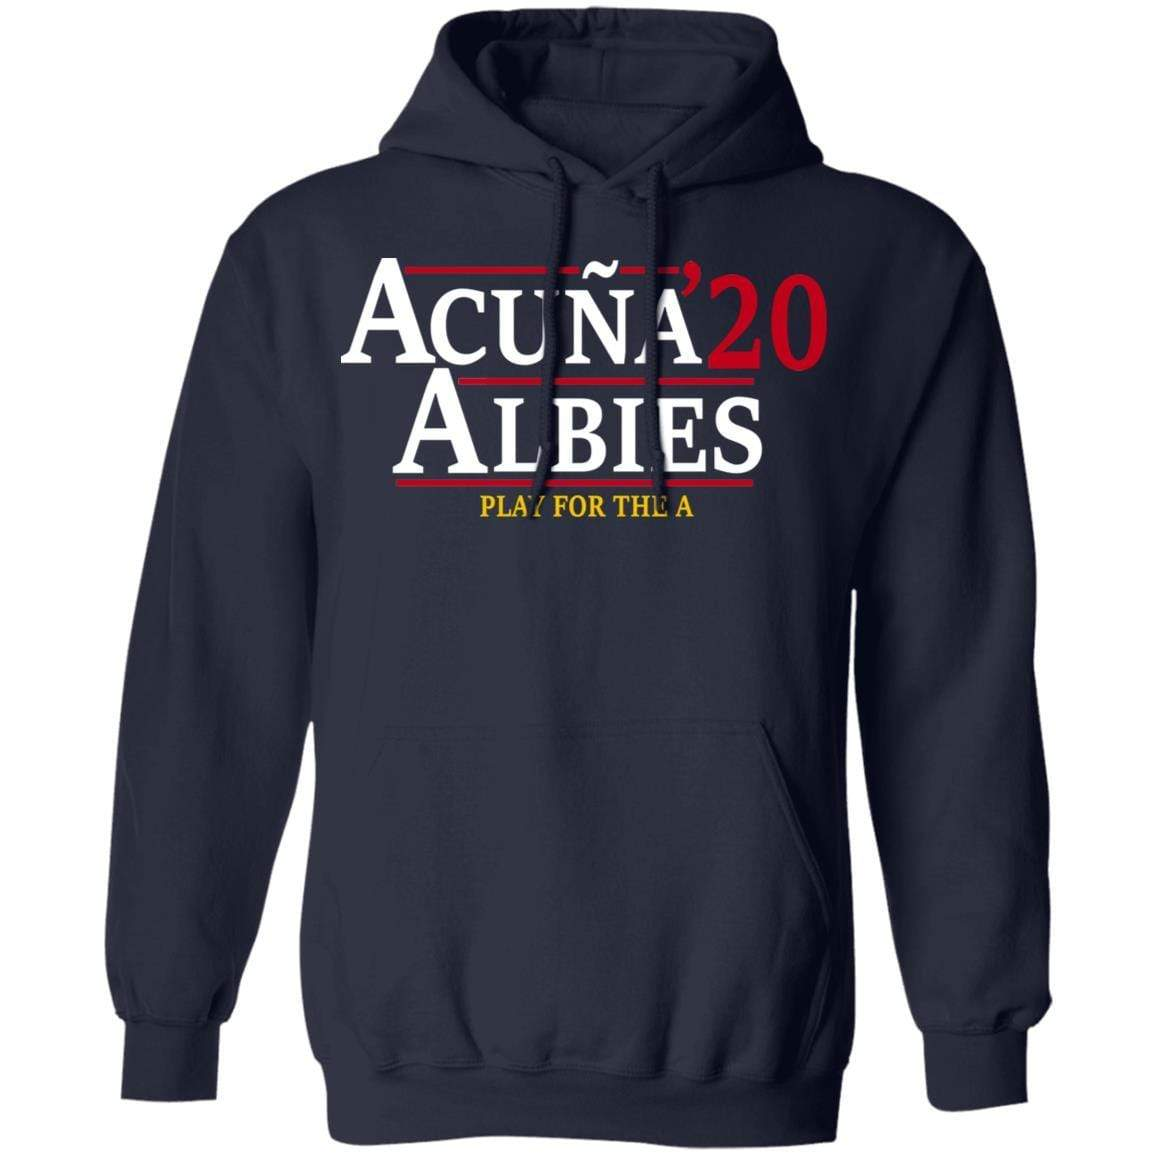 Acuna Albies 2020 Play For The A T-Shirts, Hoodies 541-4742-88478047-23135 - Tee Ript